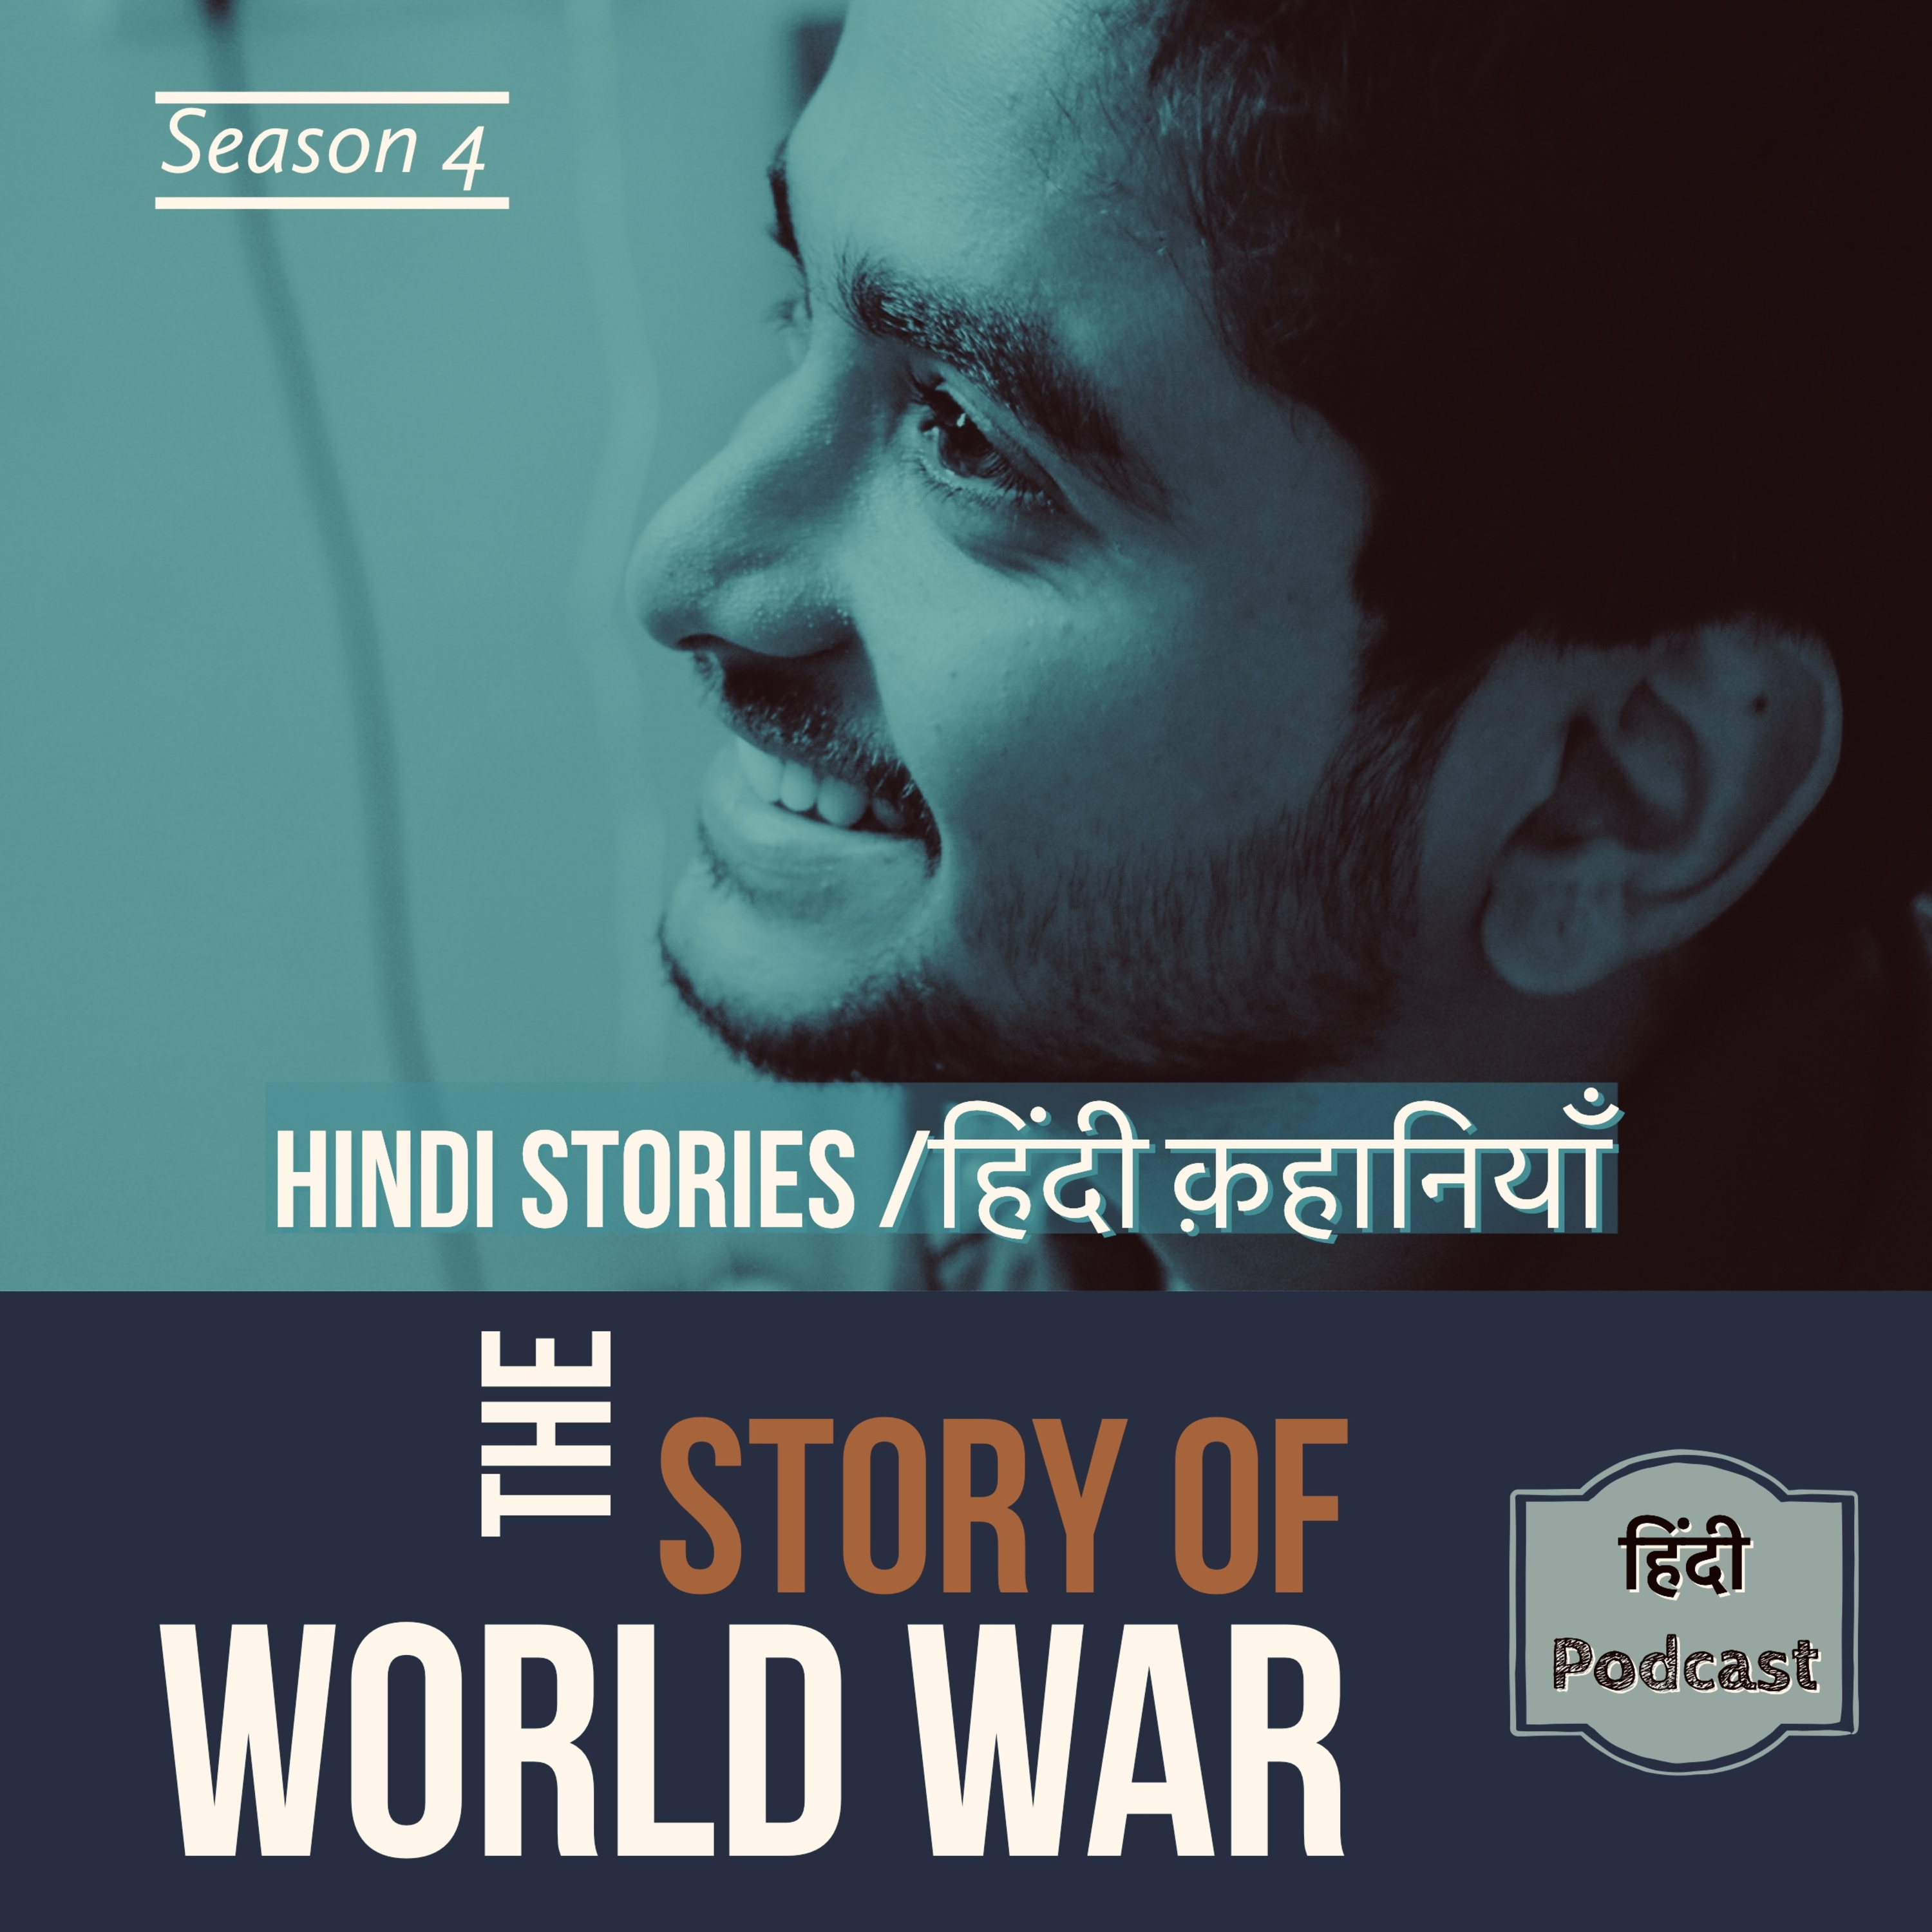 #34 WORLD WAR | Ep. 13 Treaty Of Versailles | विश्व युद्ध १